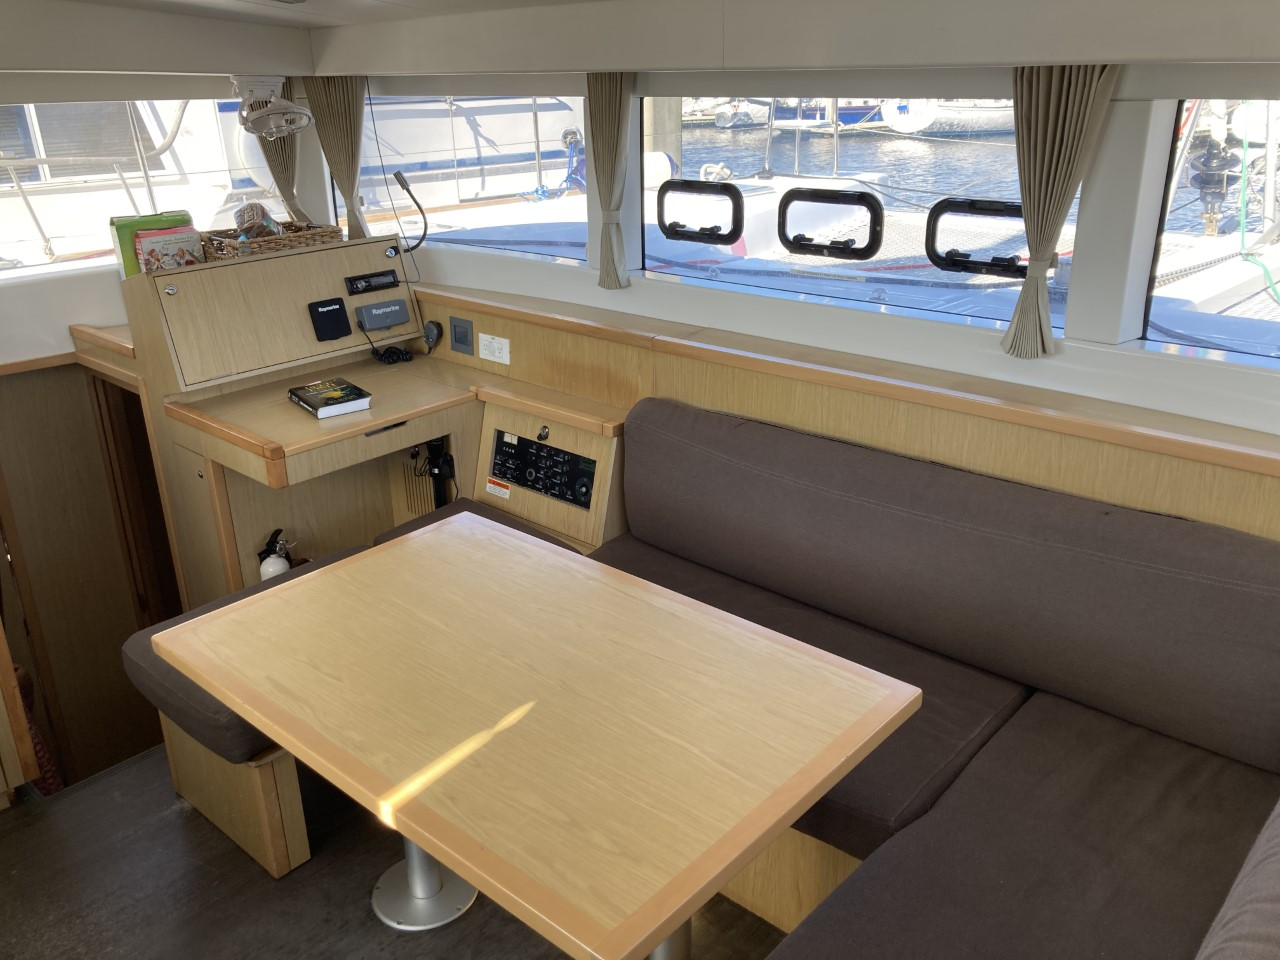 2014 lagoon 39 catamaran CARPE DIEM salon seating